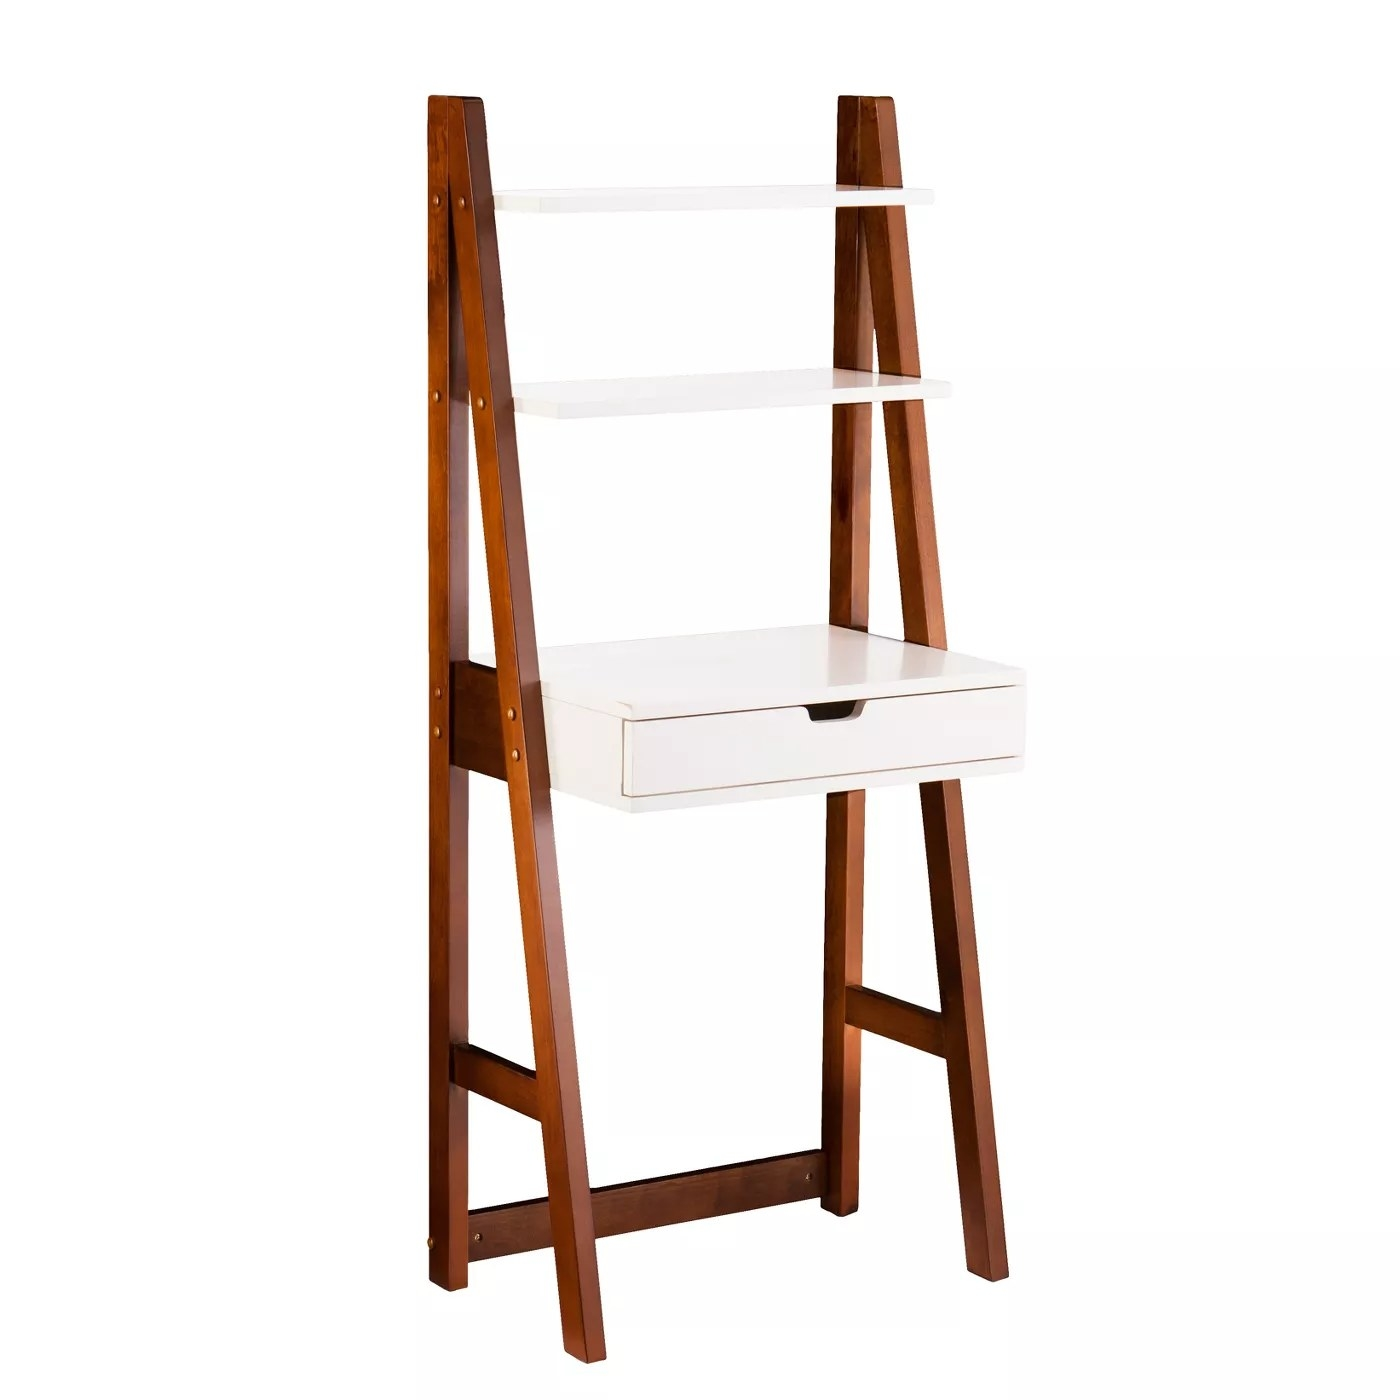 A leaning bookcase desk with a wood frame and a white laminate desk and shelves